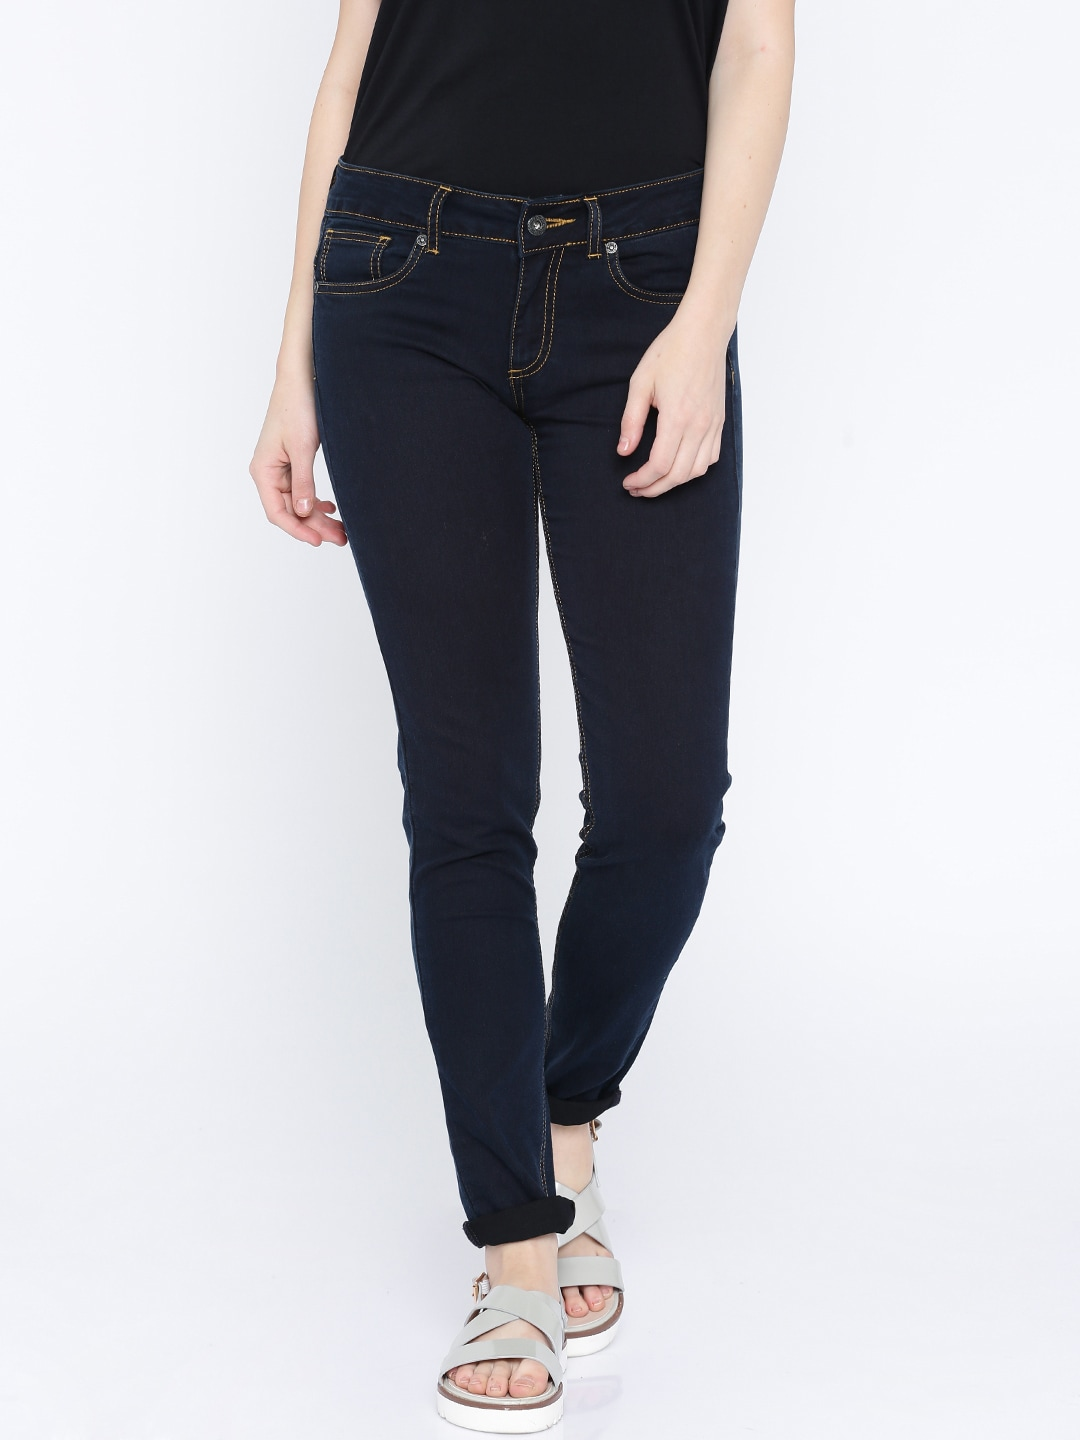 Pepe Jeans Women Blue Lola Skinny Fit Mid-Rise Clean Look Jeans image